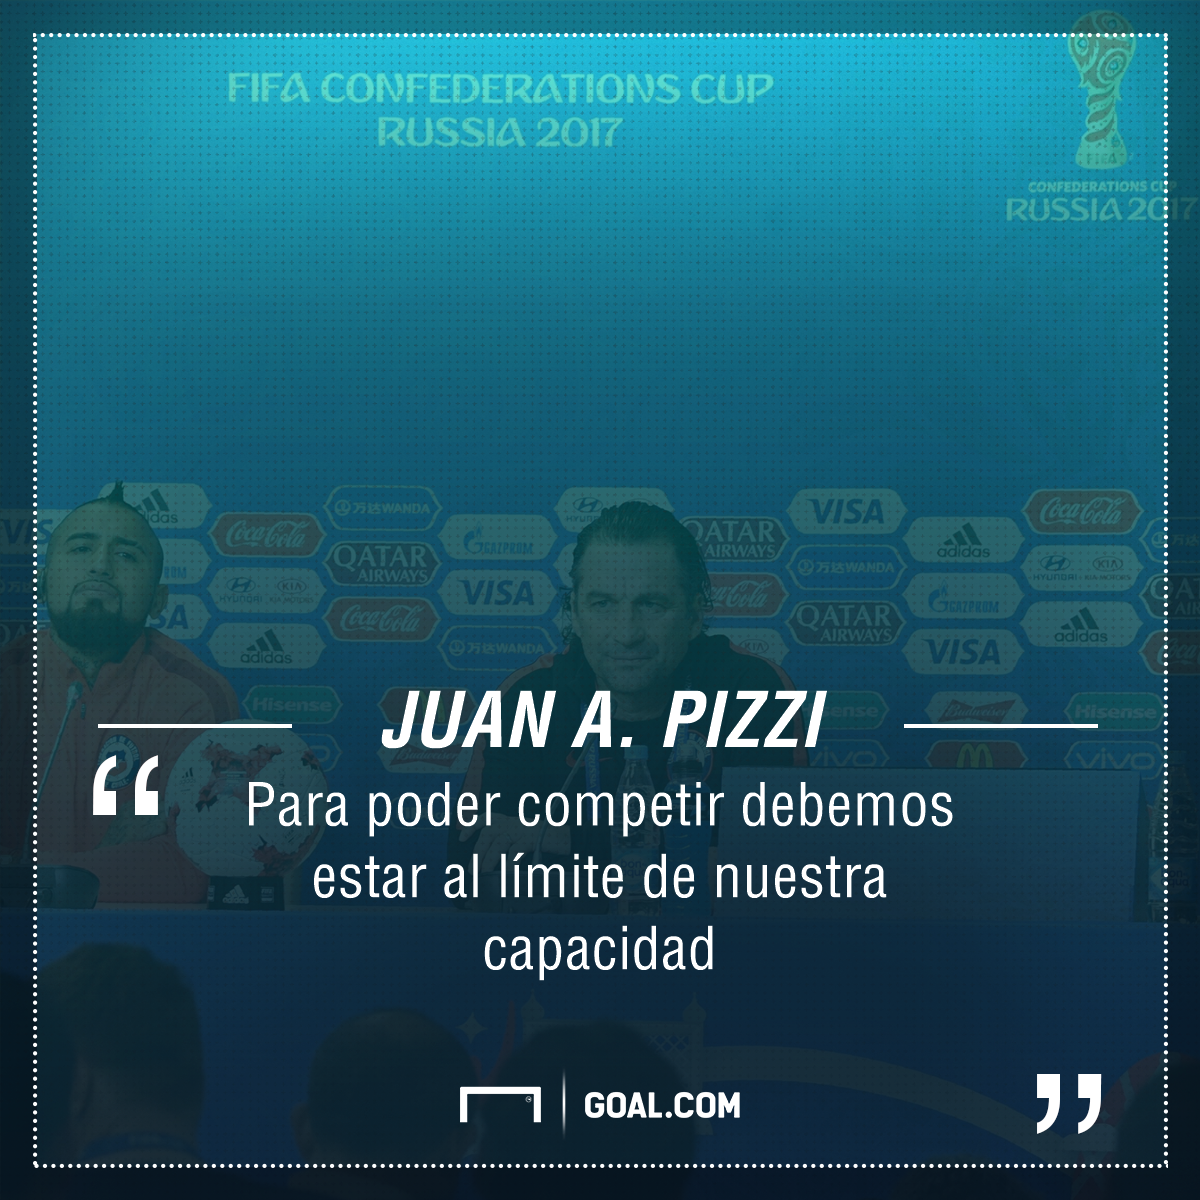 Juan Antonio Pizzi PS 010717